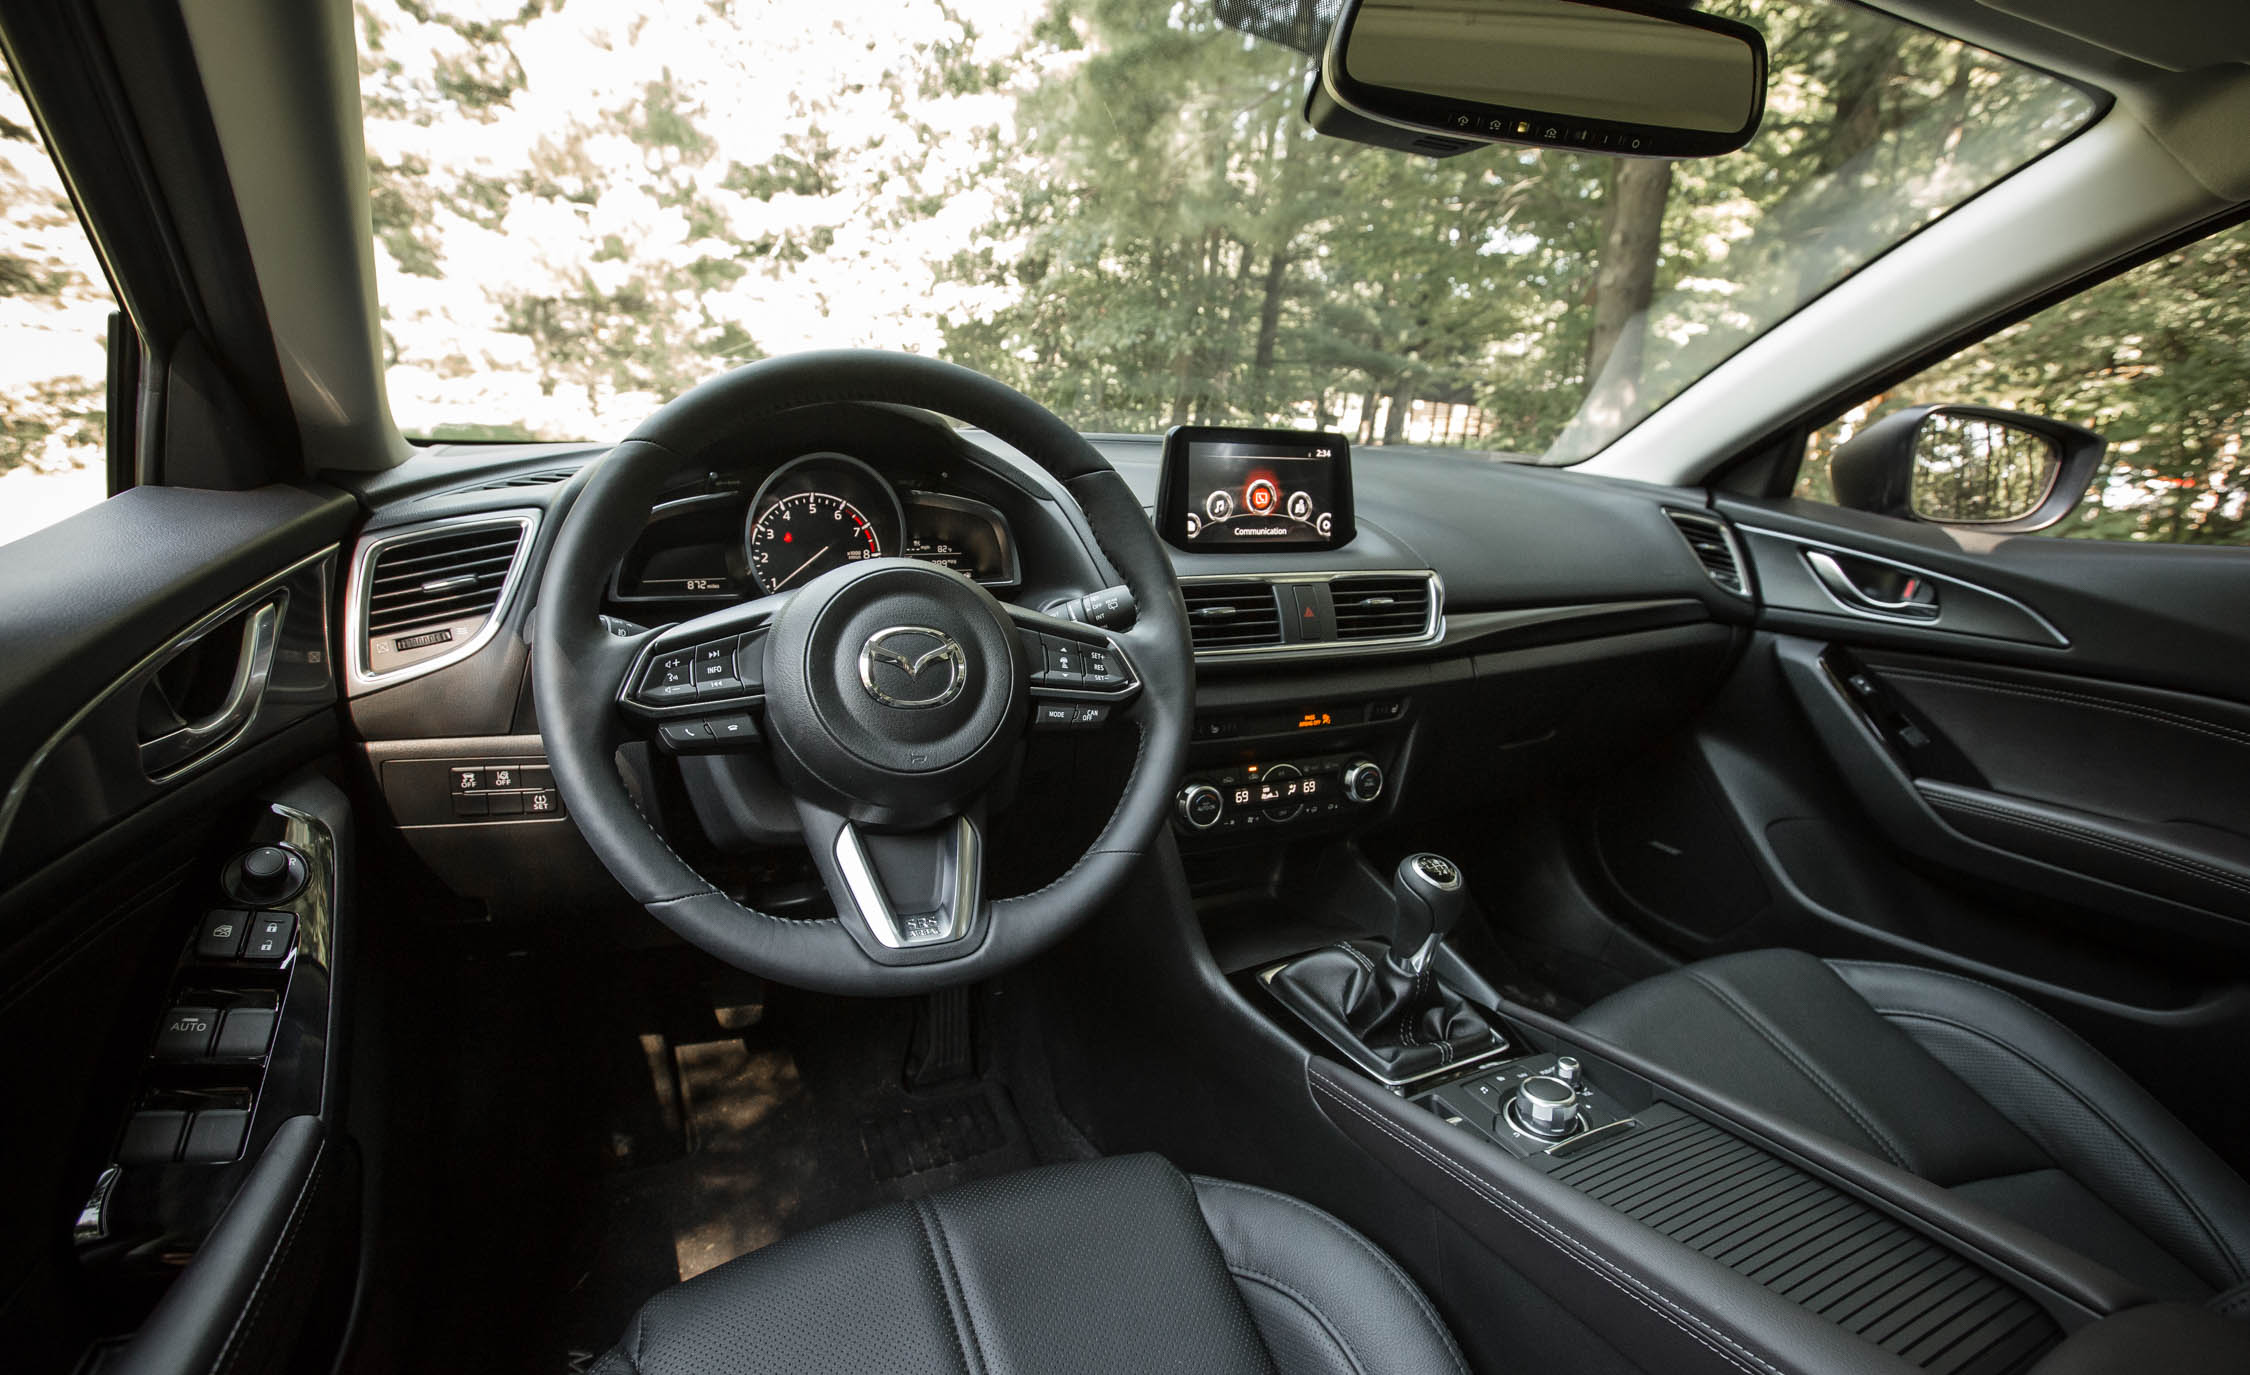 2017 Mazda3 Hatchback Interior Cockpit And Dash (Photo 31 of 40)